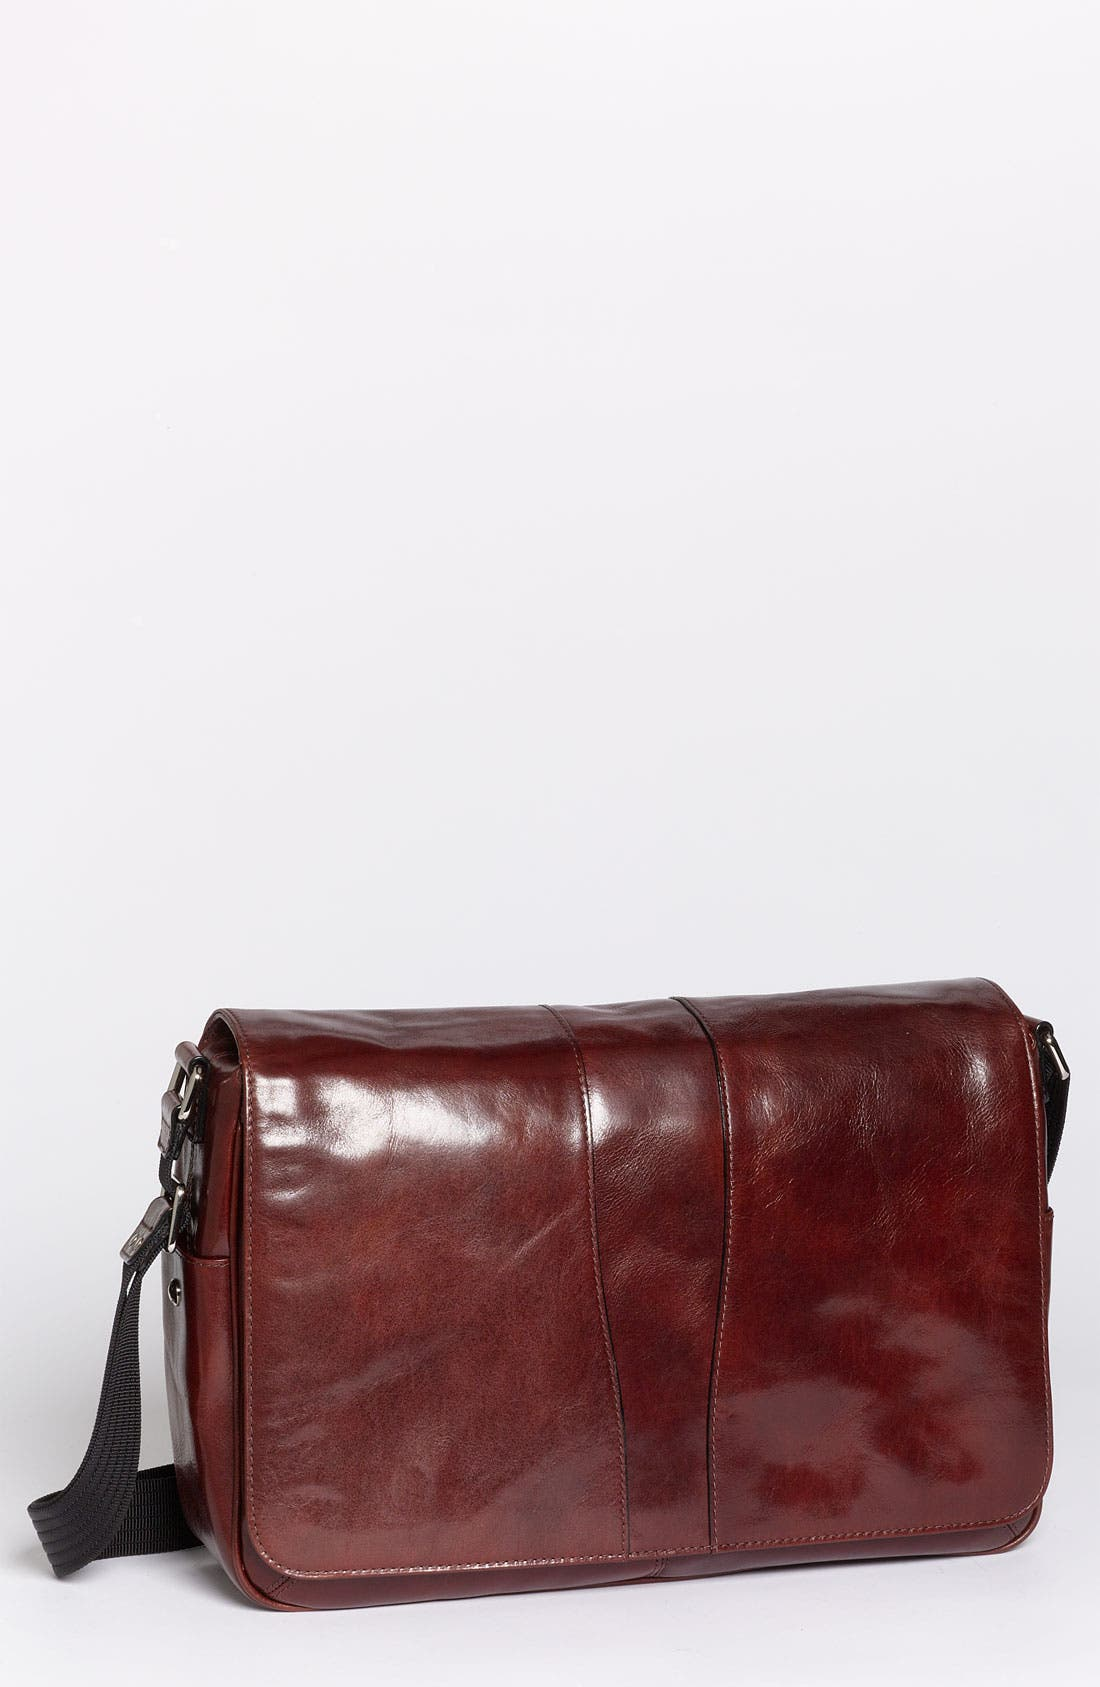 Leather Messenger Bag,                             Main thumbnail 1, color,                             200